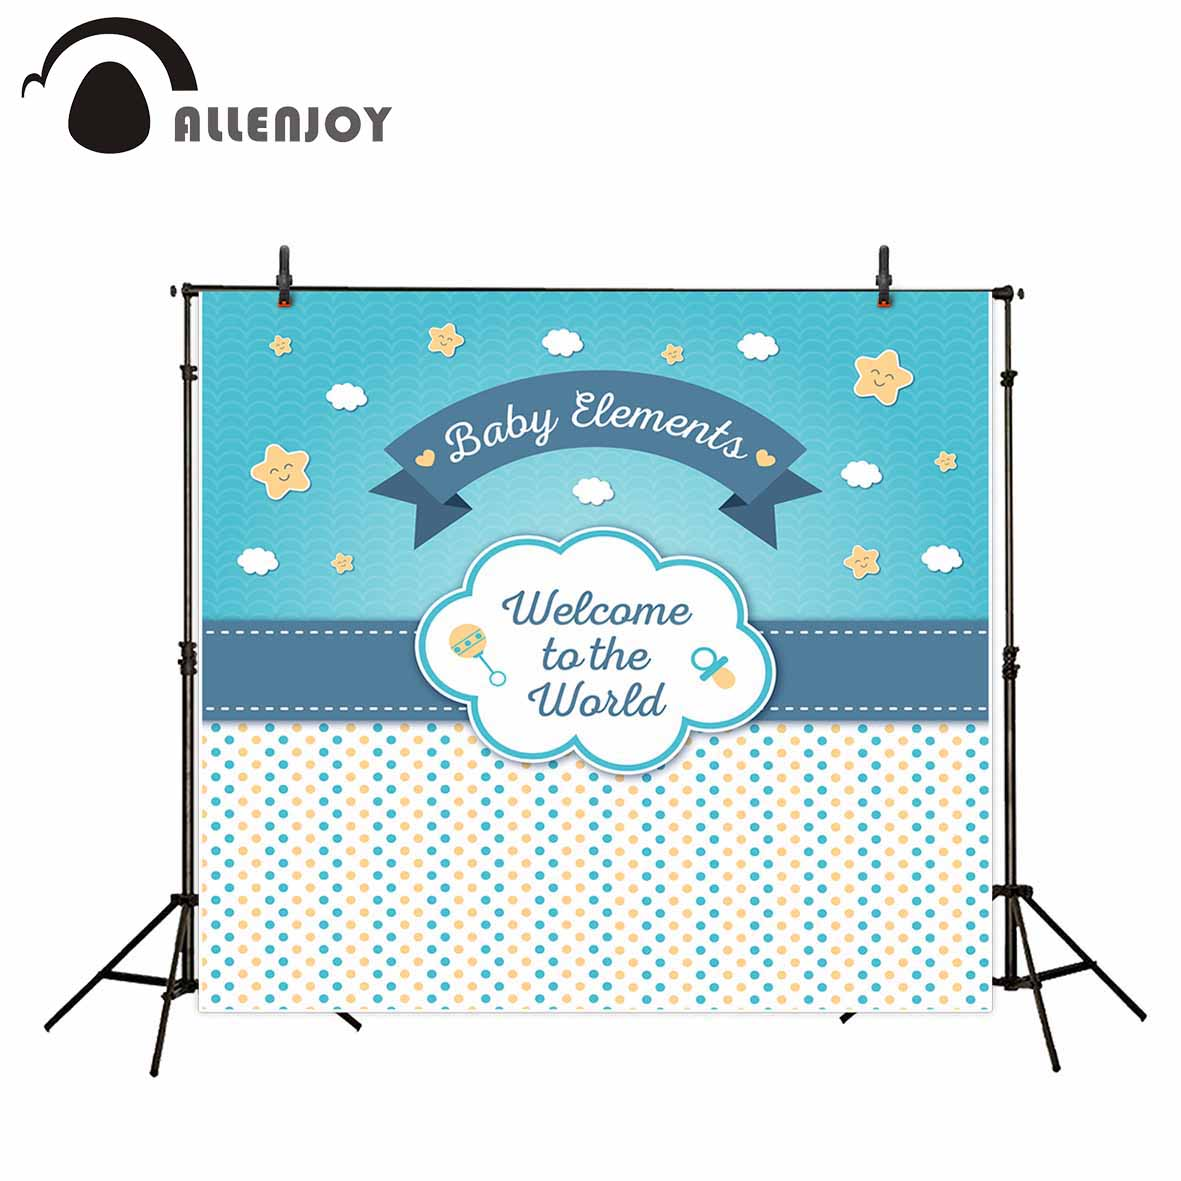 Allenjoy photography backdrops baby shower blue dots stars custom background for photo a photo photography studio funds allenjoy photography backdrops library bookshelf school student study room books photocall baby shower